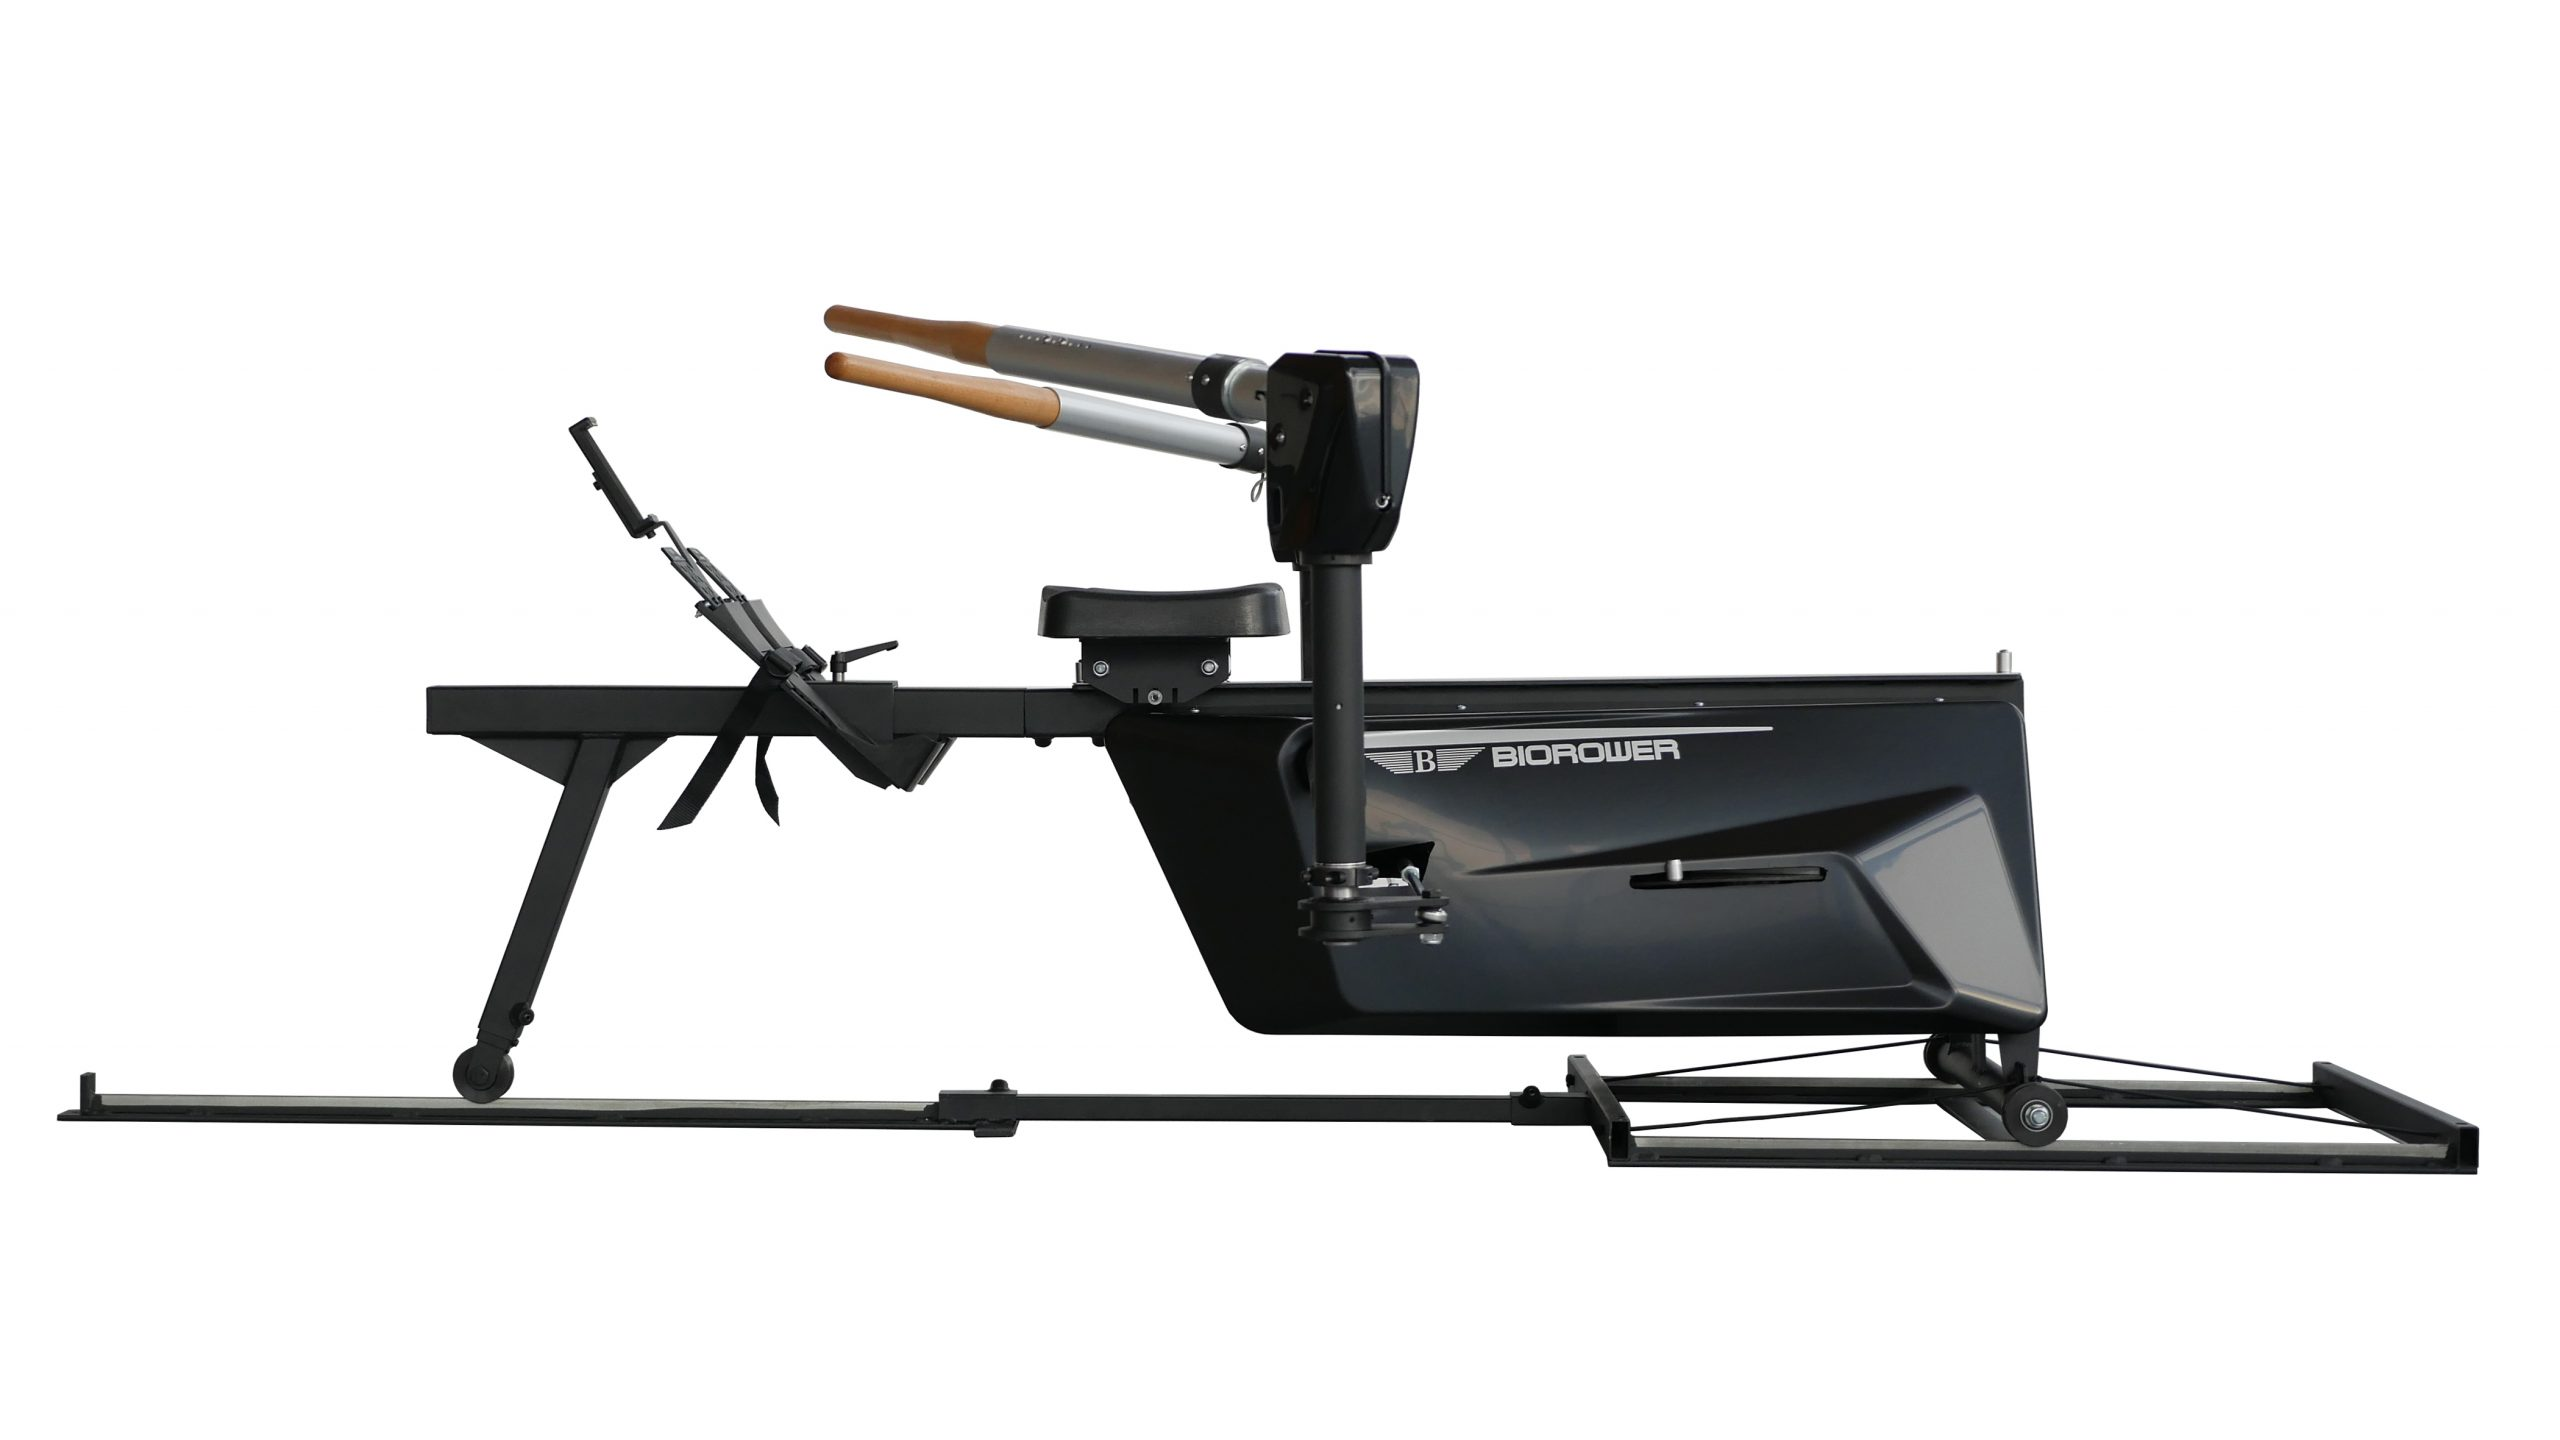 true rowing simulator Biorower S1club